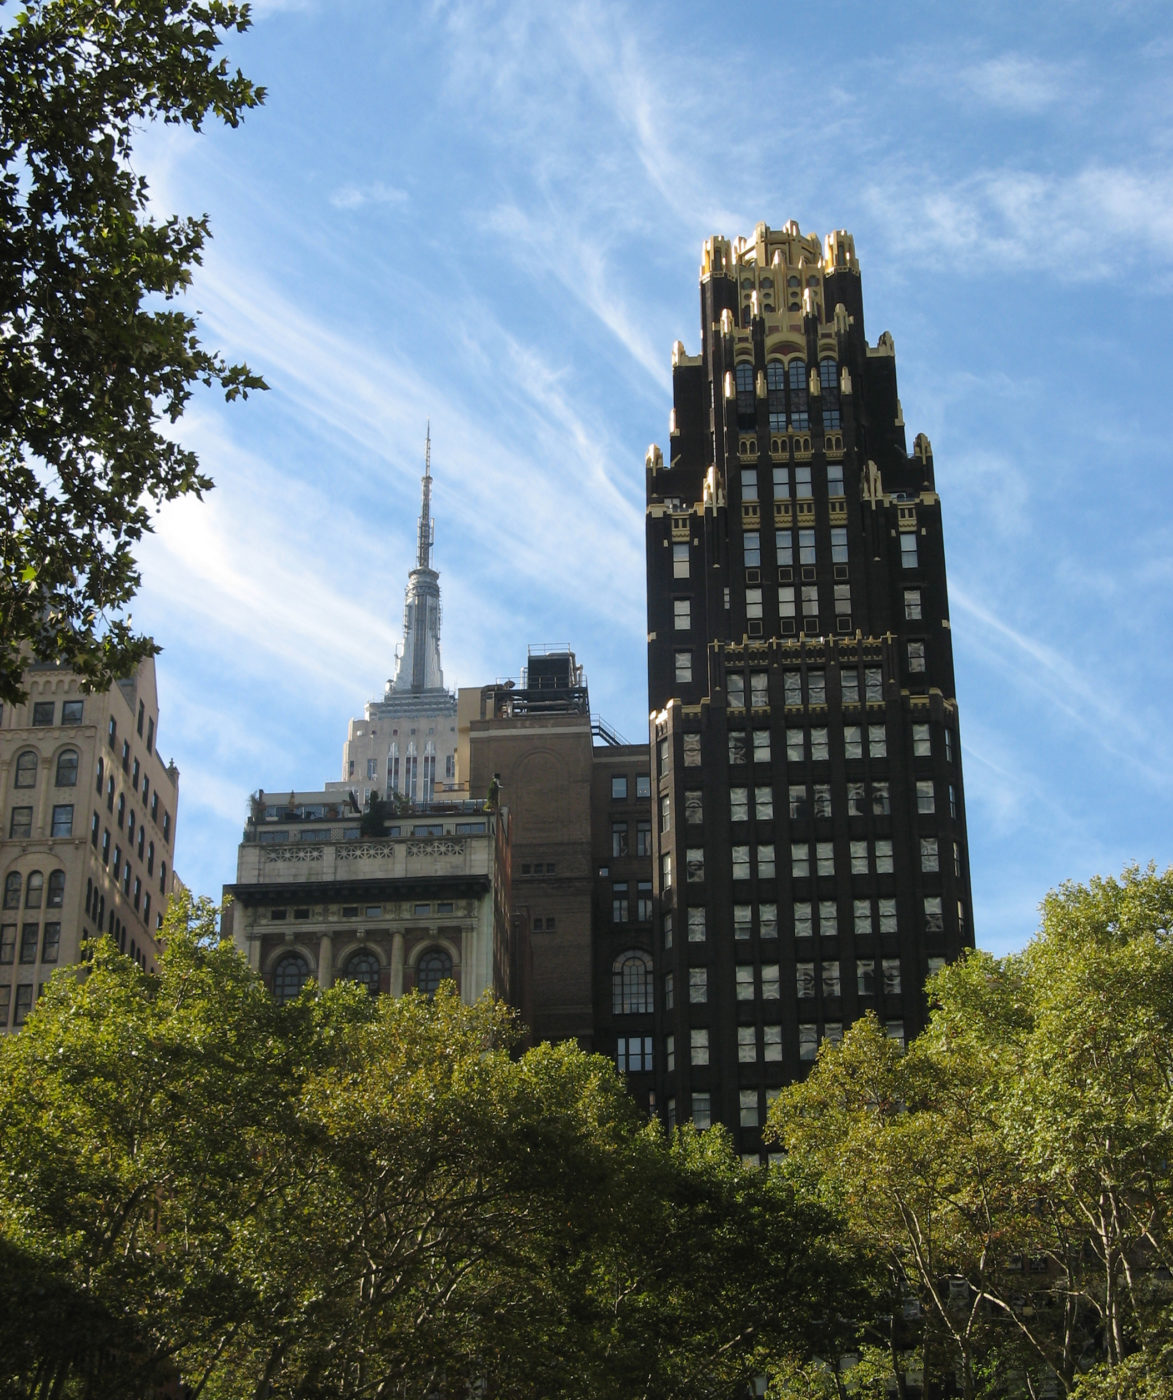 American Radiator Building in the front, Empire State Building in the back